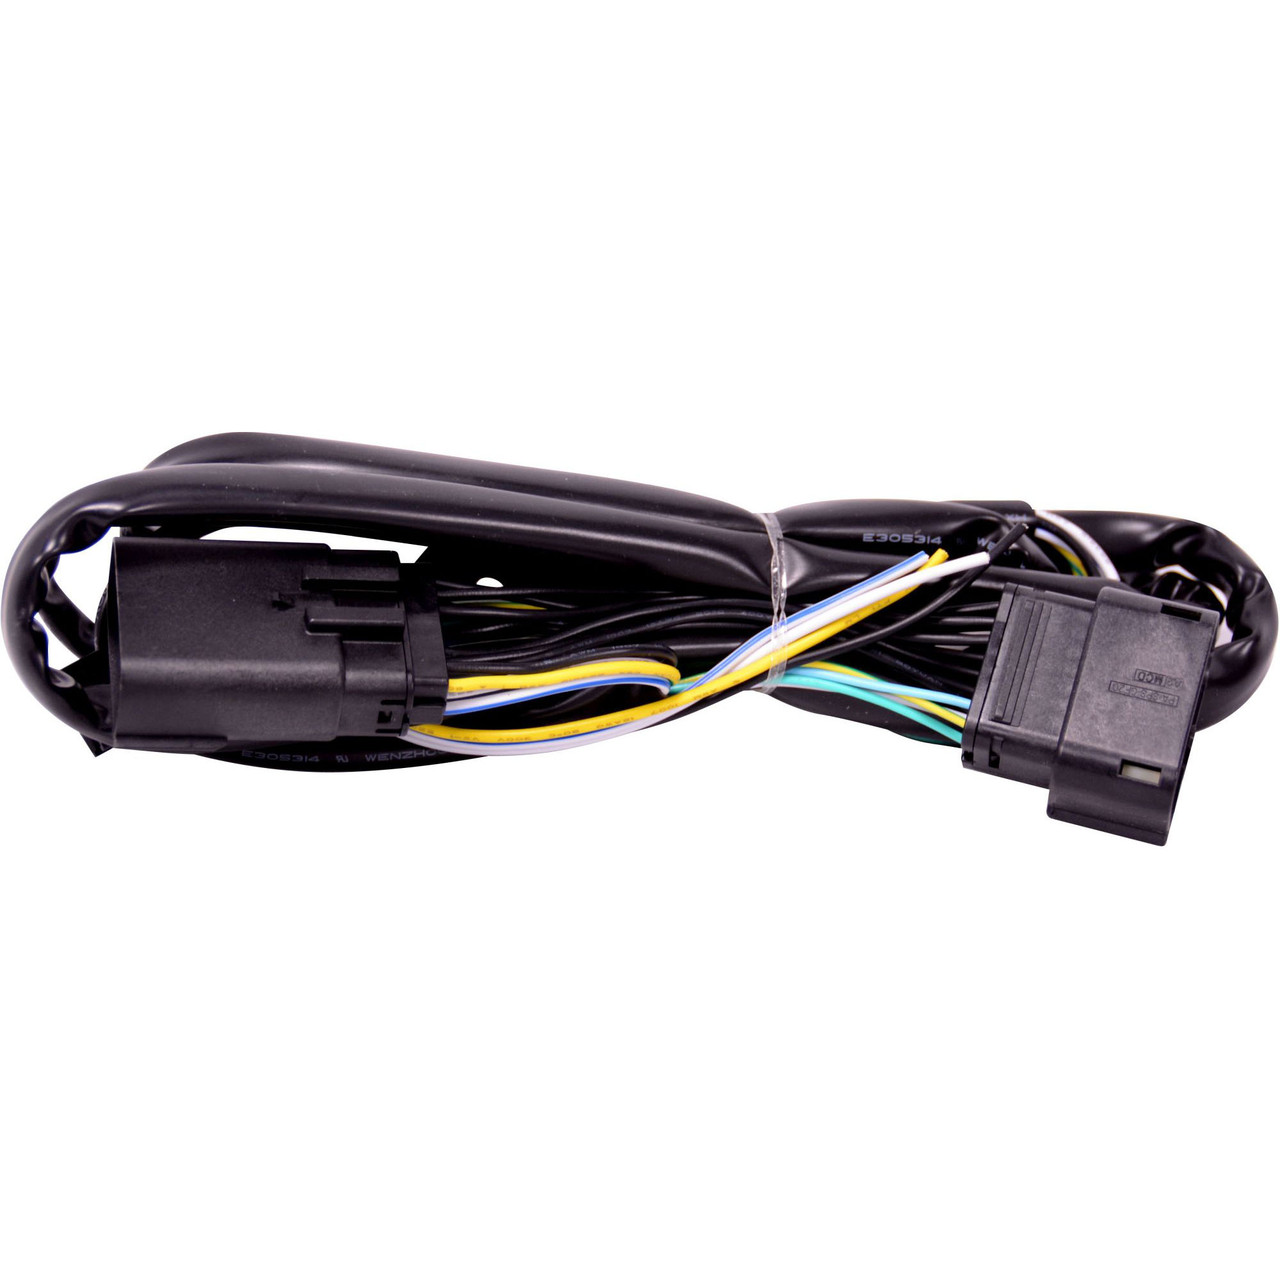 small resolution of arc audio hd rsh rear speaker amplifier interface t harness for 2015 and newer harley davidson touring motorcycles creative audio